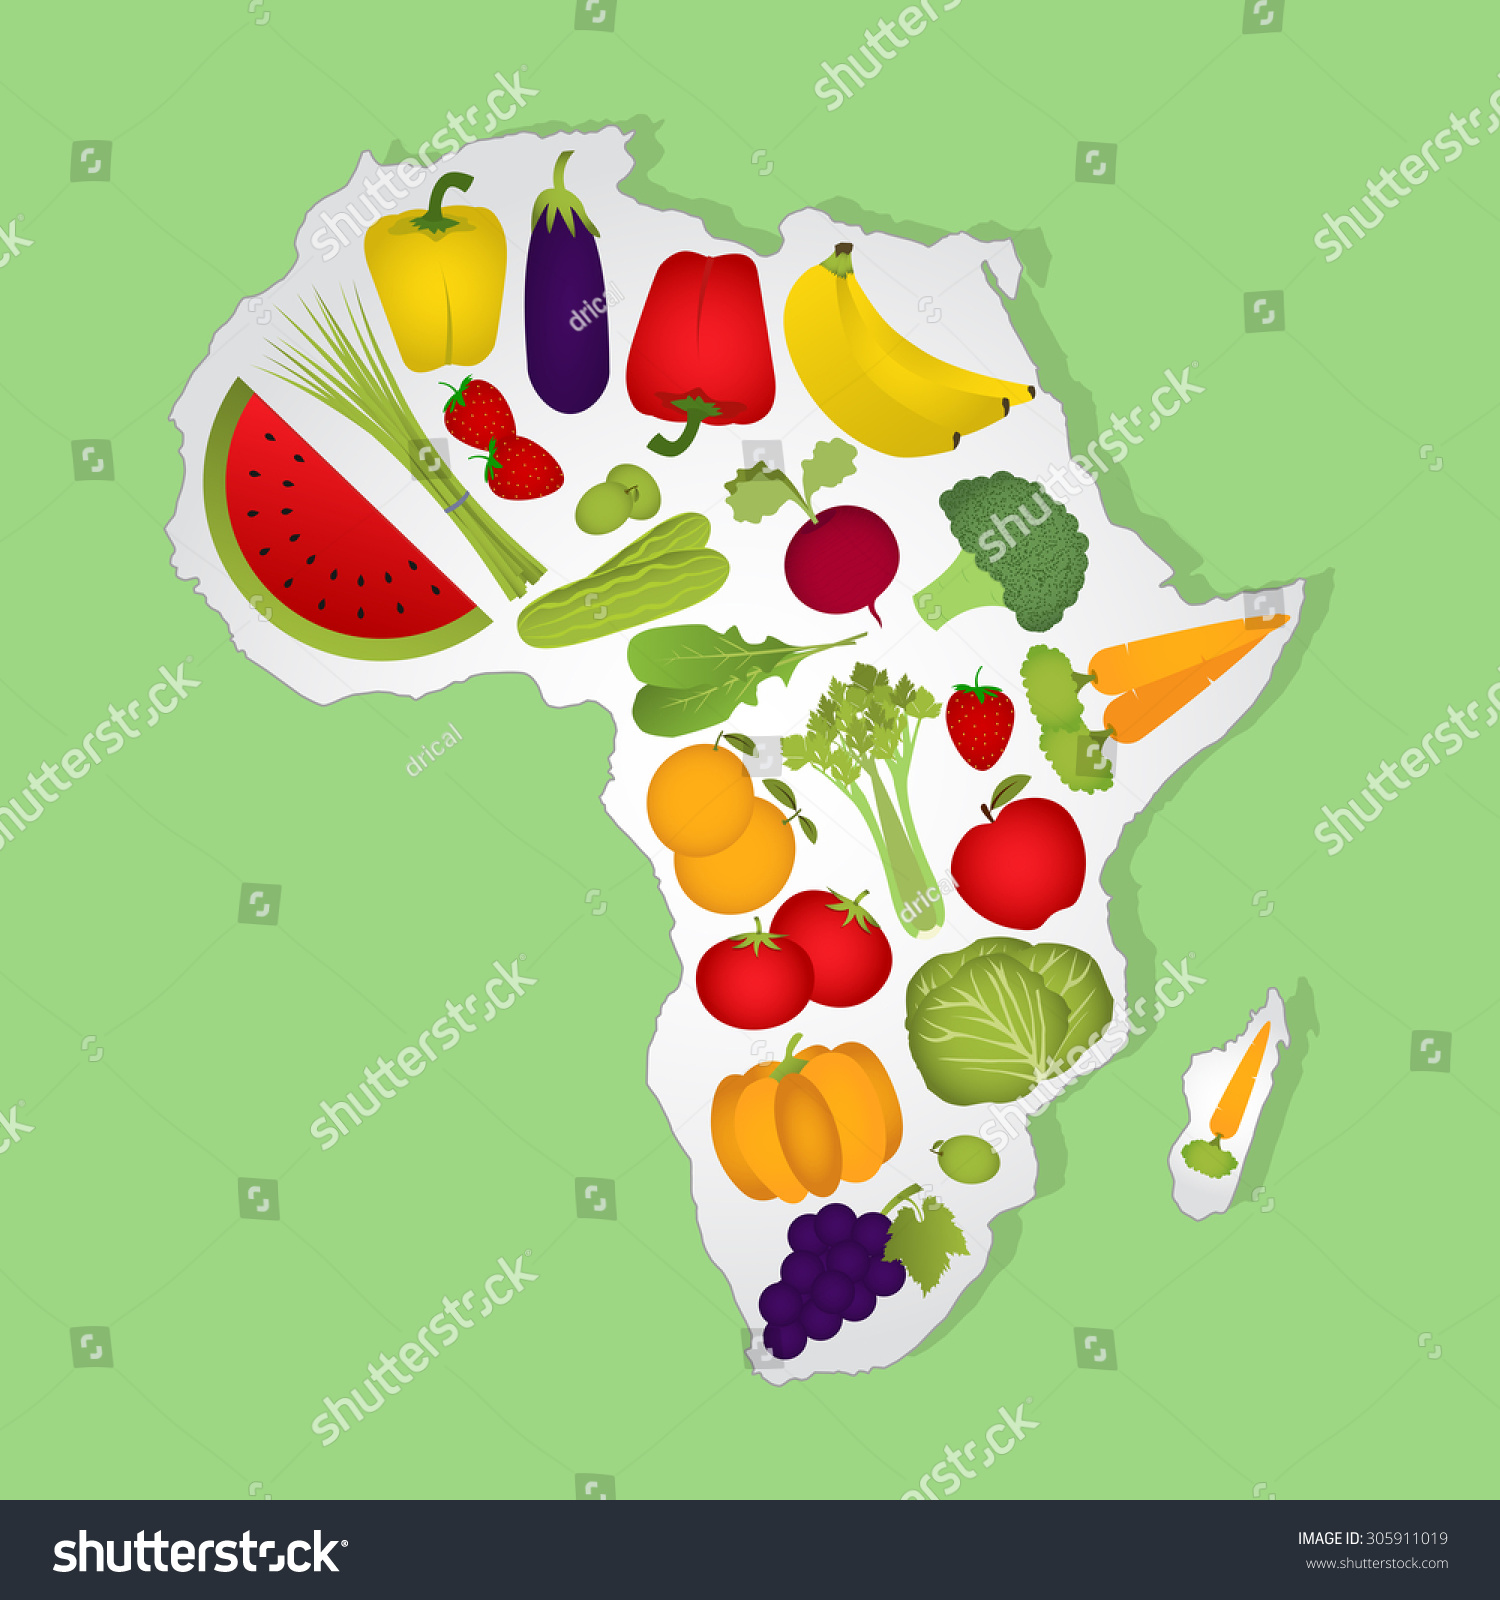 Map Africa Full Fruits Vegetables Green Stock Vector (Royalty Free